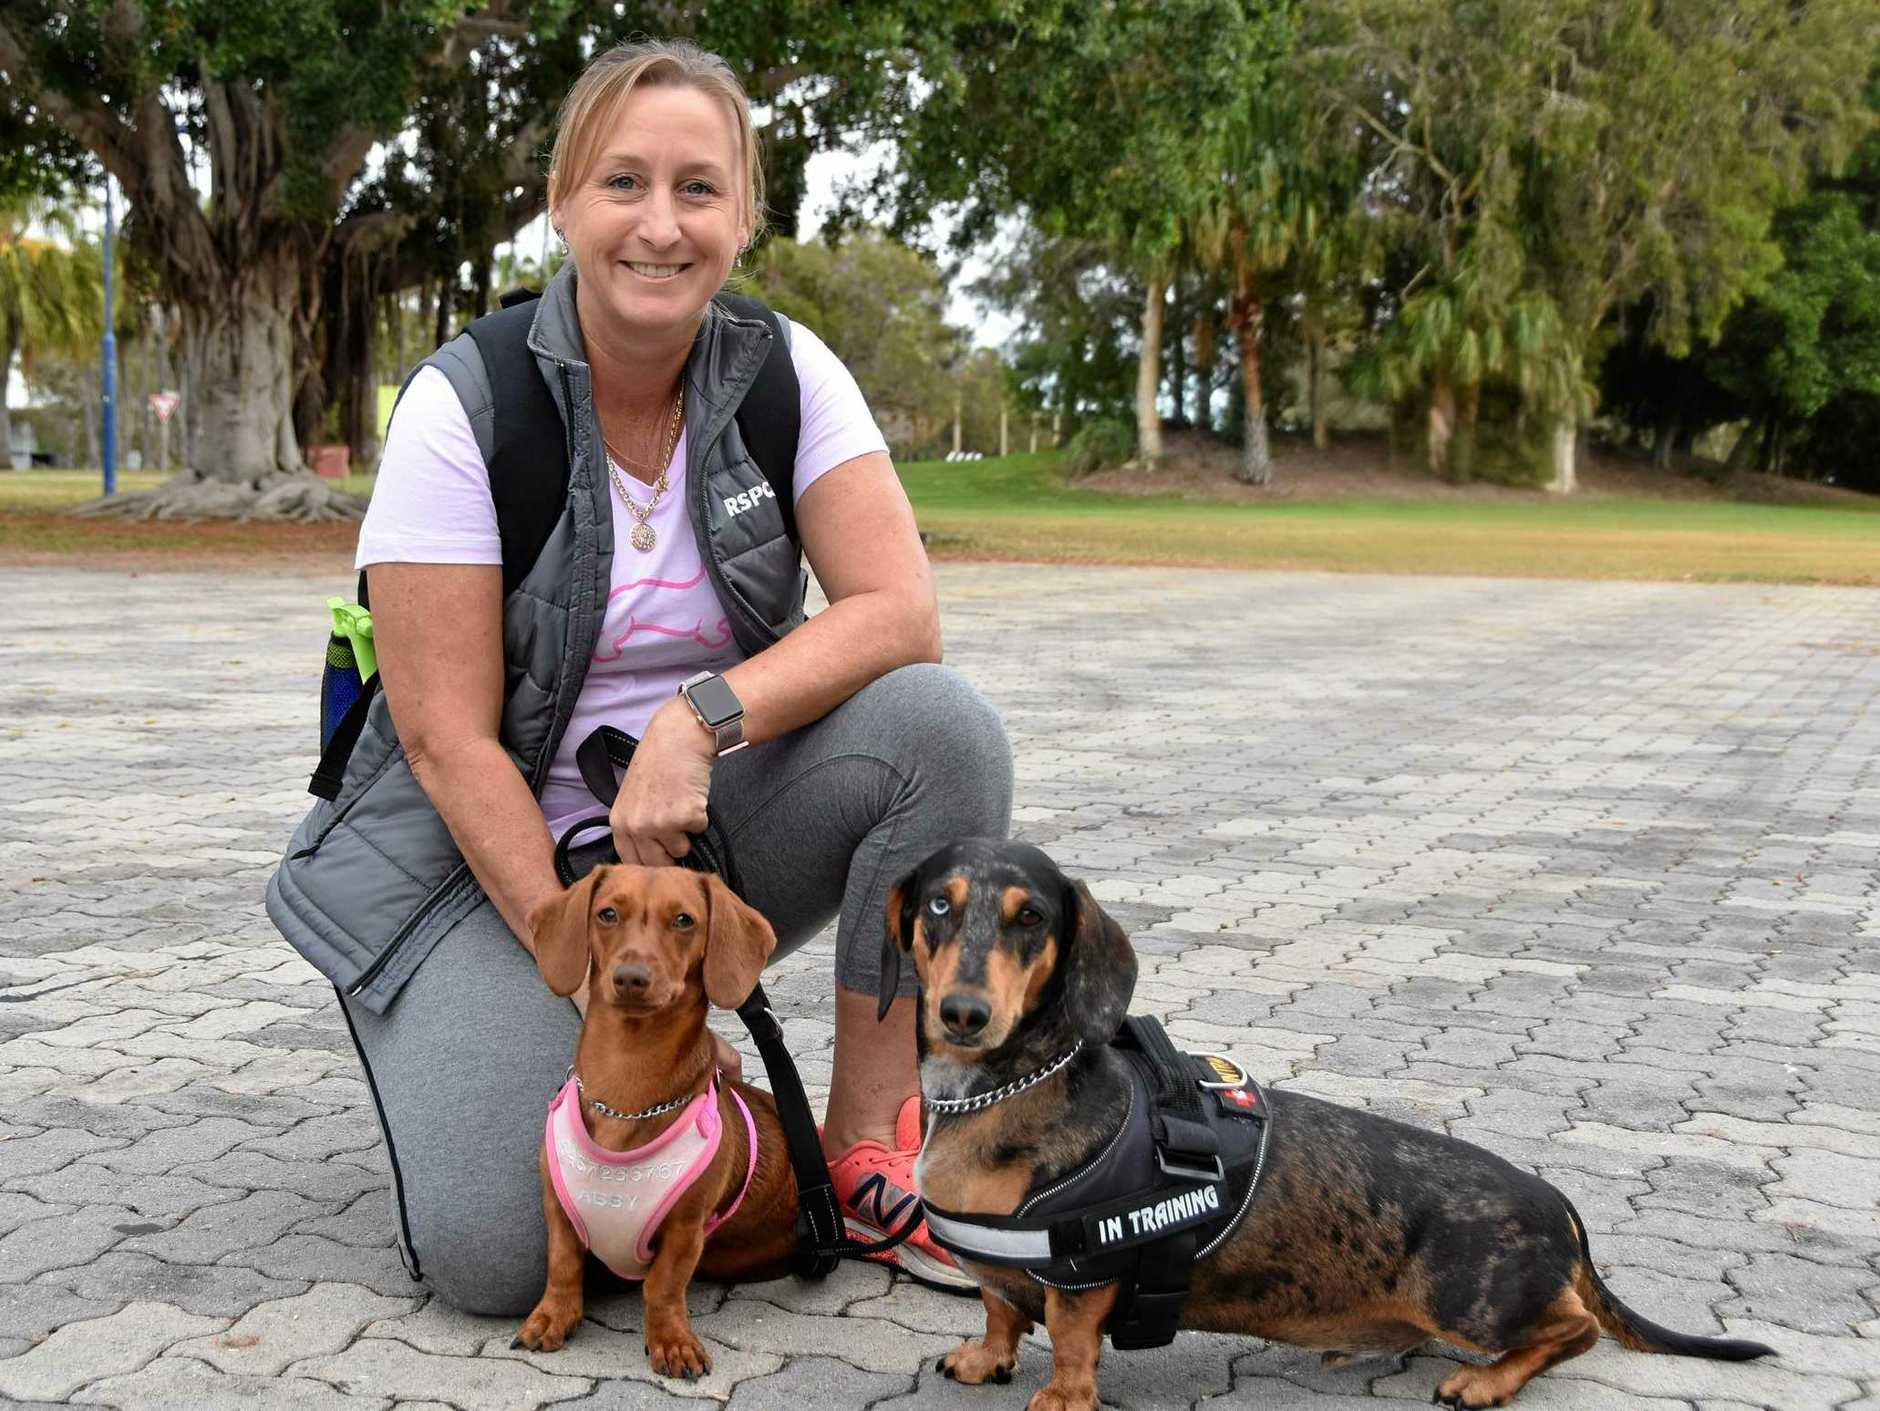 MORNING STRUTT: Tina Underwood with 'Abby' and 'Dude' at the first Gladstone Animal Rescue Group's Strut 4 Mutts fundraiser walk